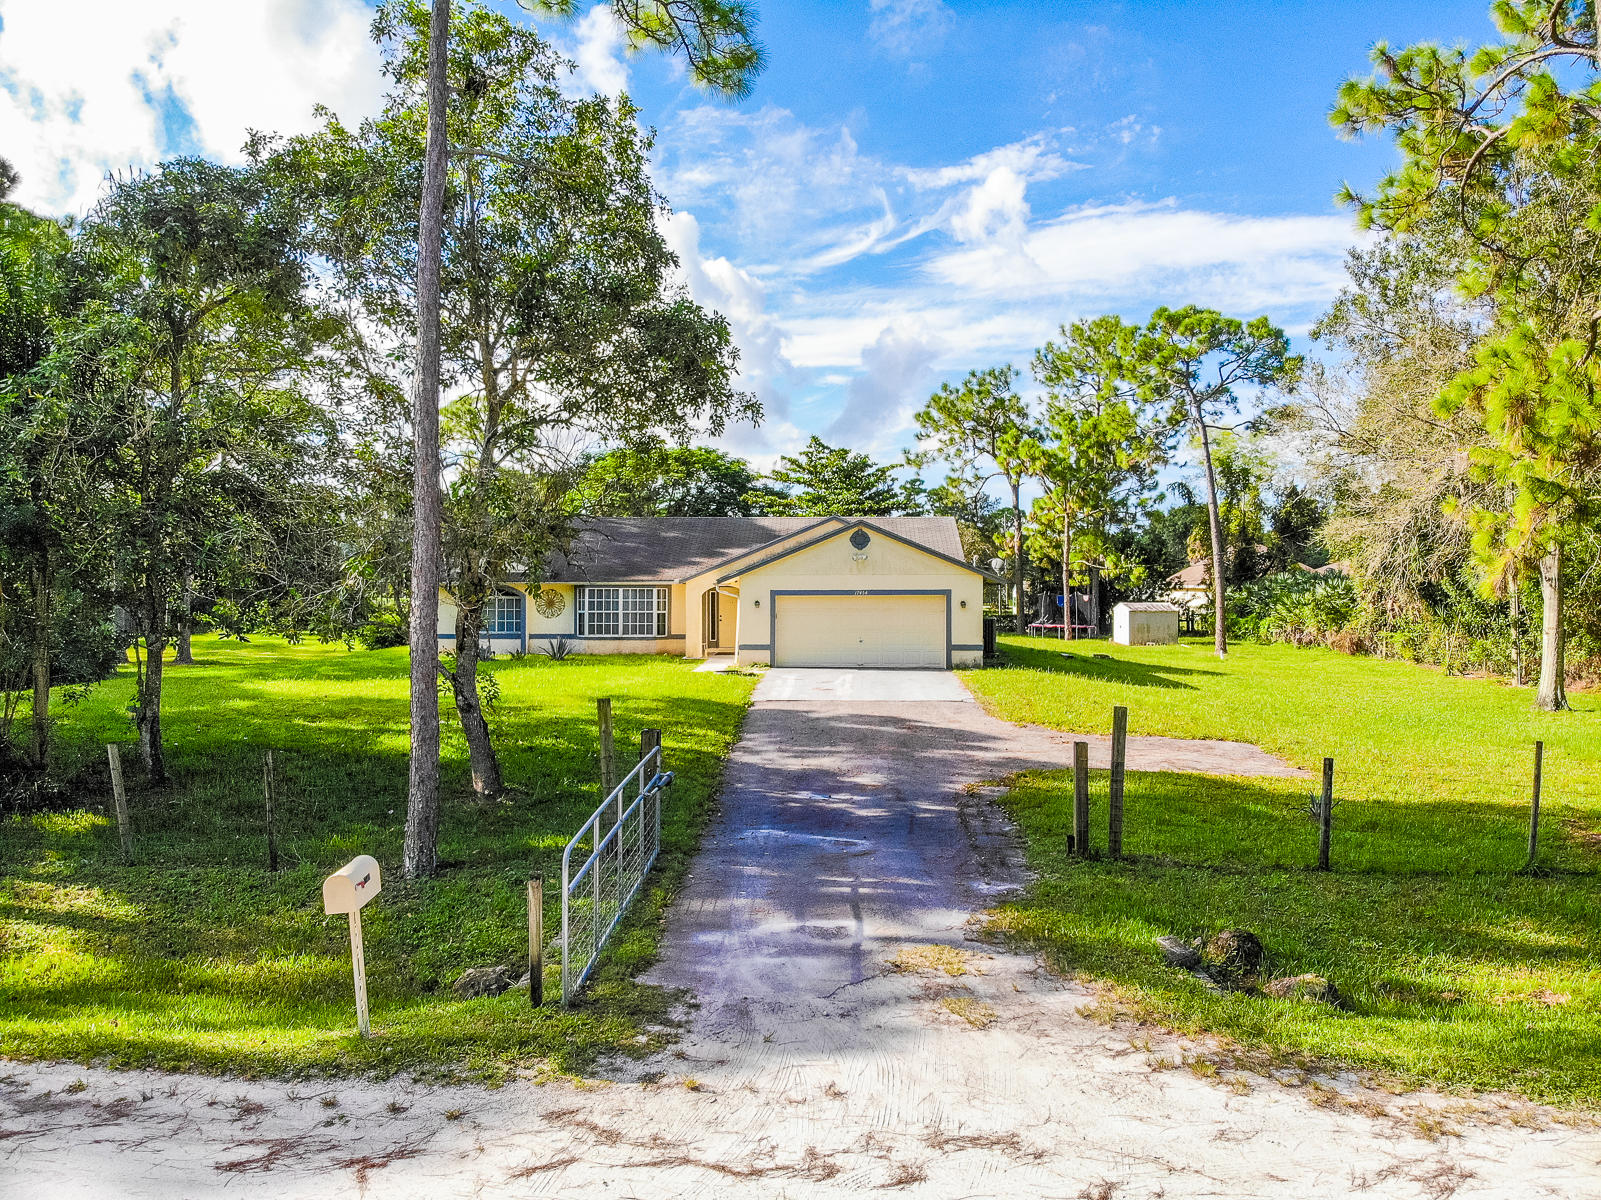 17454 49th Street N, Loxahatchee in Palm Beach County, FL 33470 Home for Sale